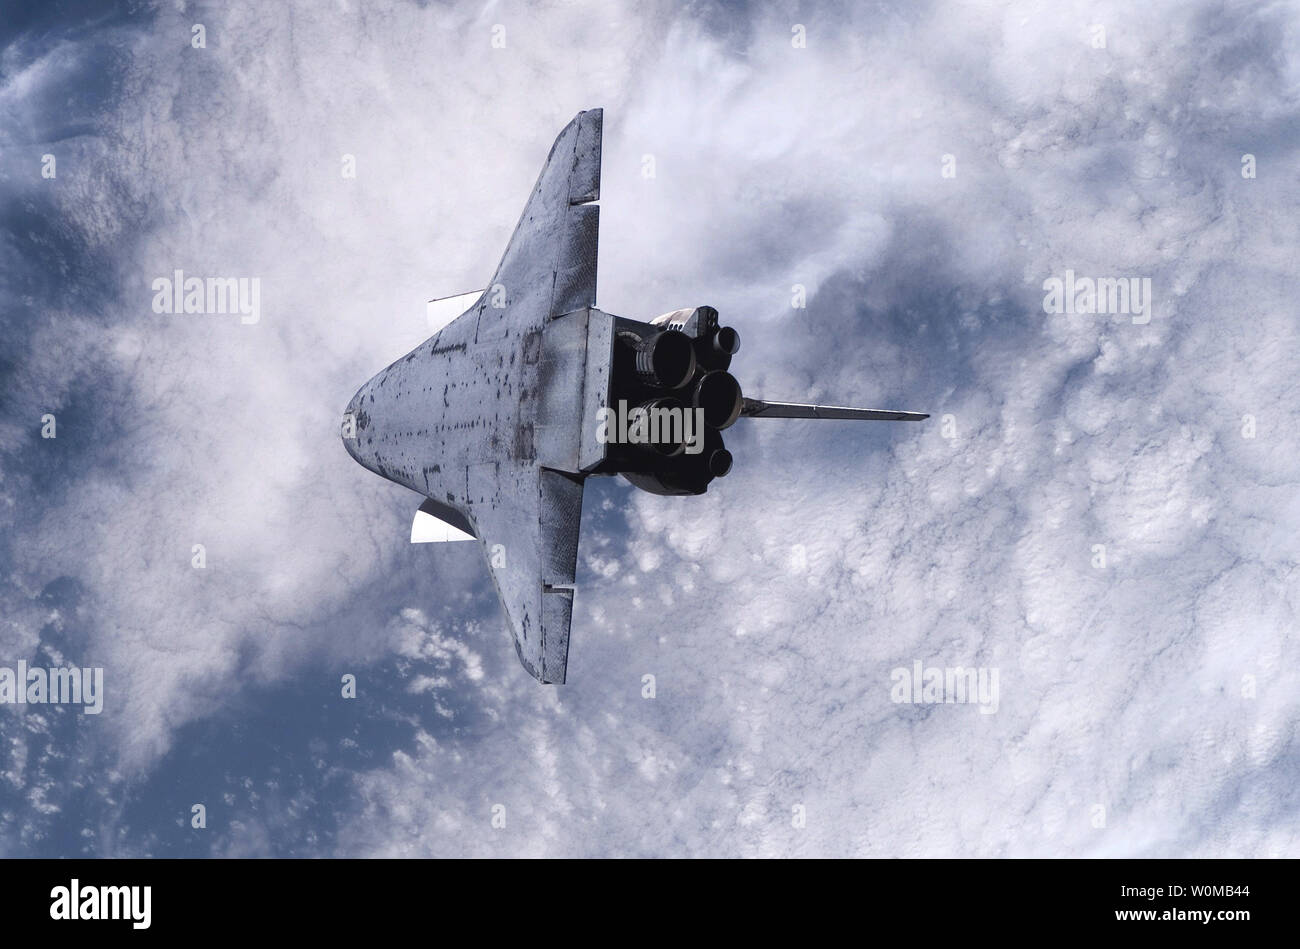 This NASA photo taken by Astronauts onboard the International Space Station on August 10, 2007 shows the underside of the Space Shuttle Endeavour during a back flip and careful survey by crew members onboard the orbital outpost. After ground studies, mission managers suspect debris came off Endeavour's external fuel tank one minute after liftoff on Wednesday and struck tiles on the shuttle's underside, near the right main landing gear door. (UPI Photo/NASA) - Stock Image